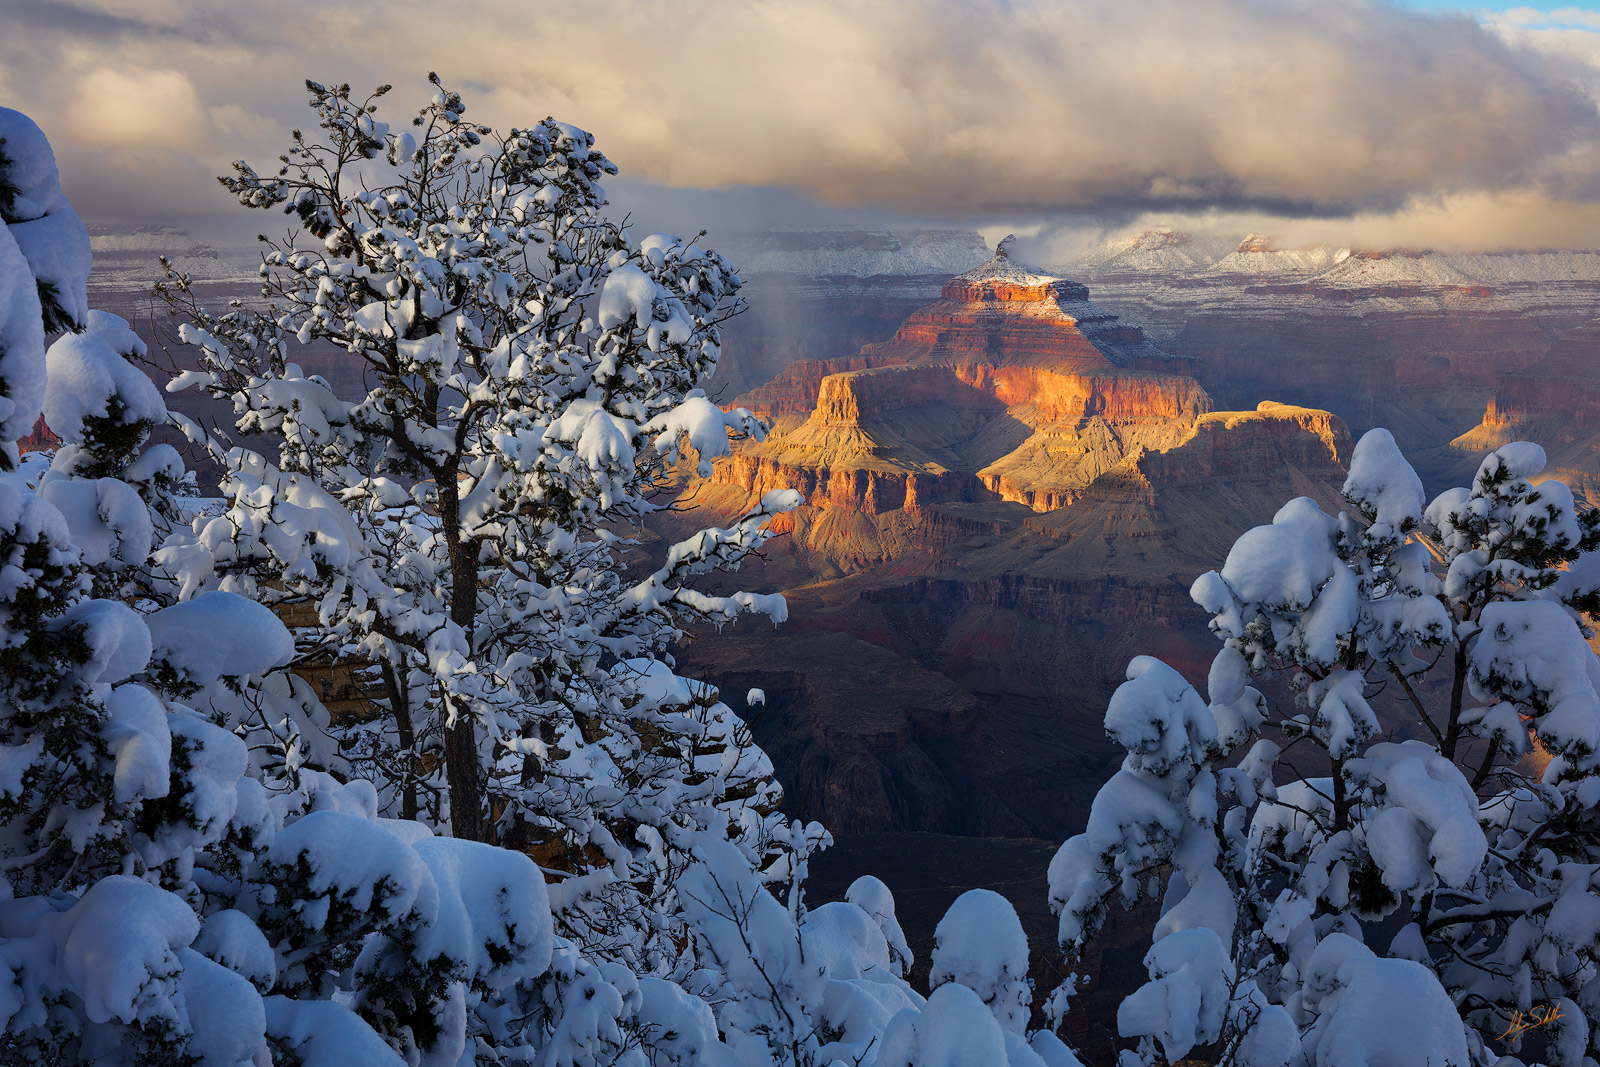 AZ, Arizona, Grand Canyon, Grand Canyon National Park, Isis Temple, Snow, Snow at the Grand Canyon, South Rim, South Rim of the Grand Canyon, Winter, Winter at the Grand Canyon, mather point, photo